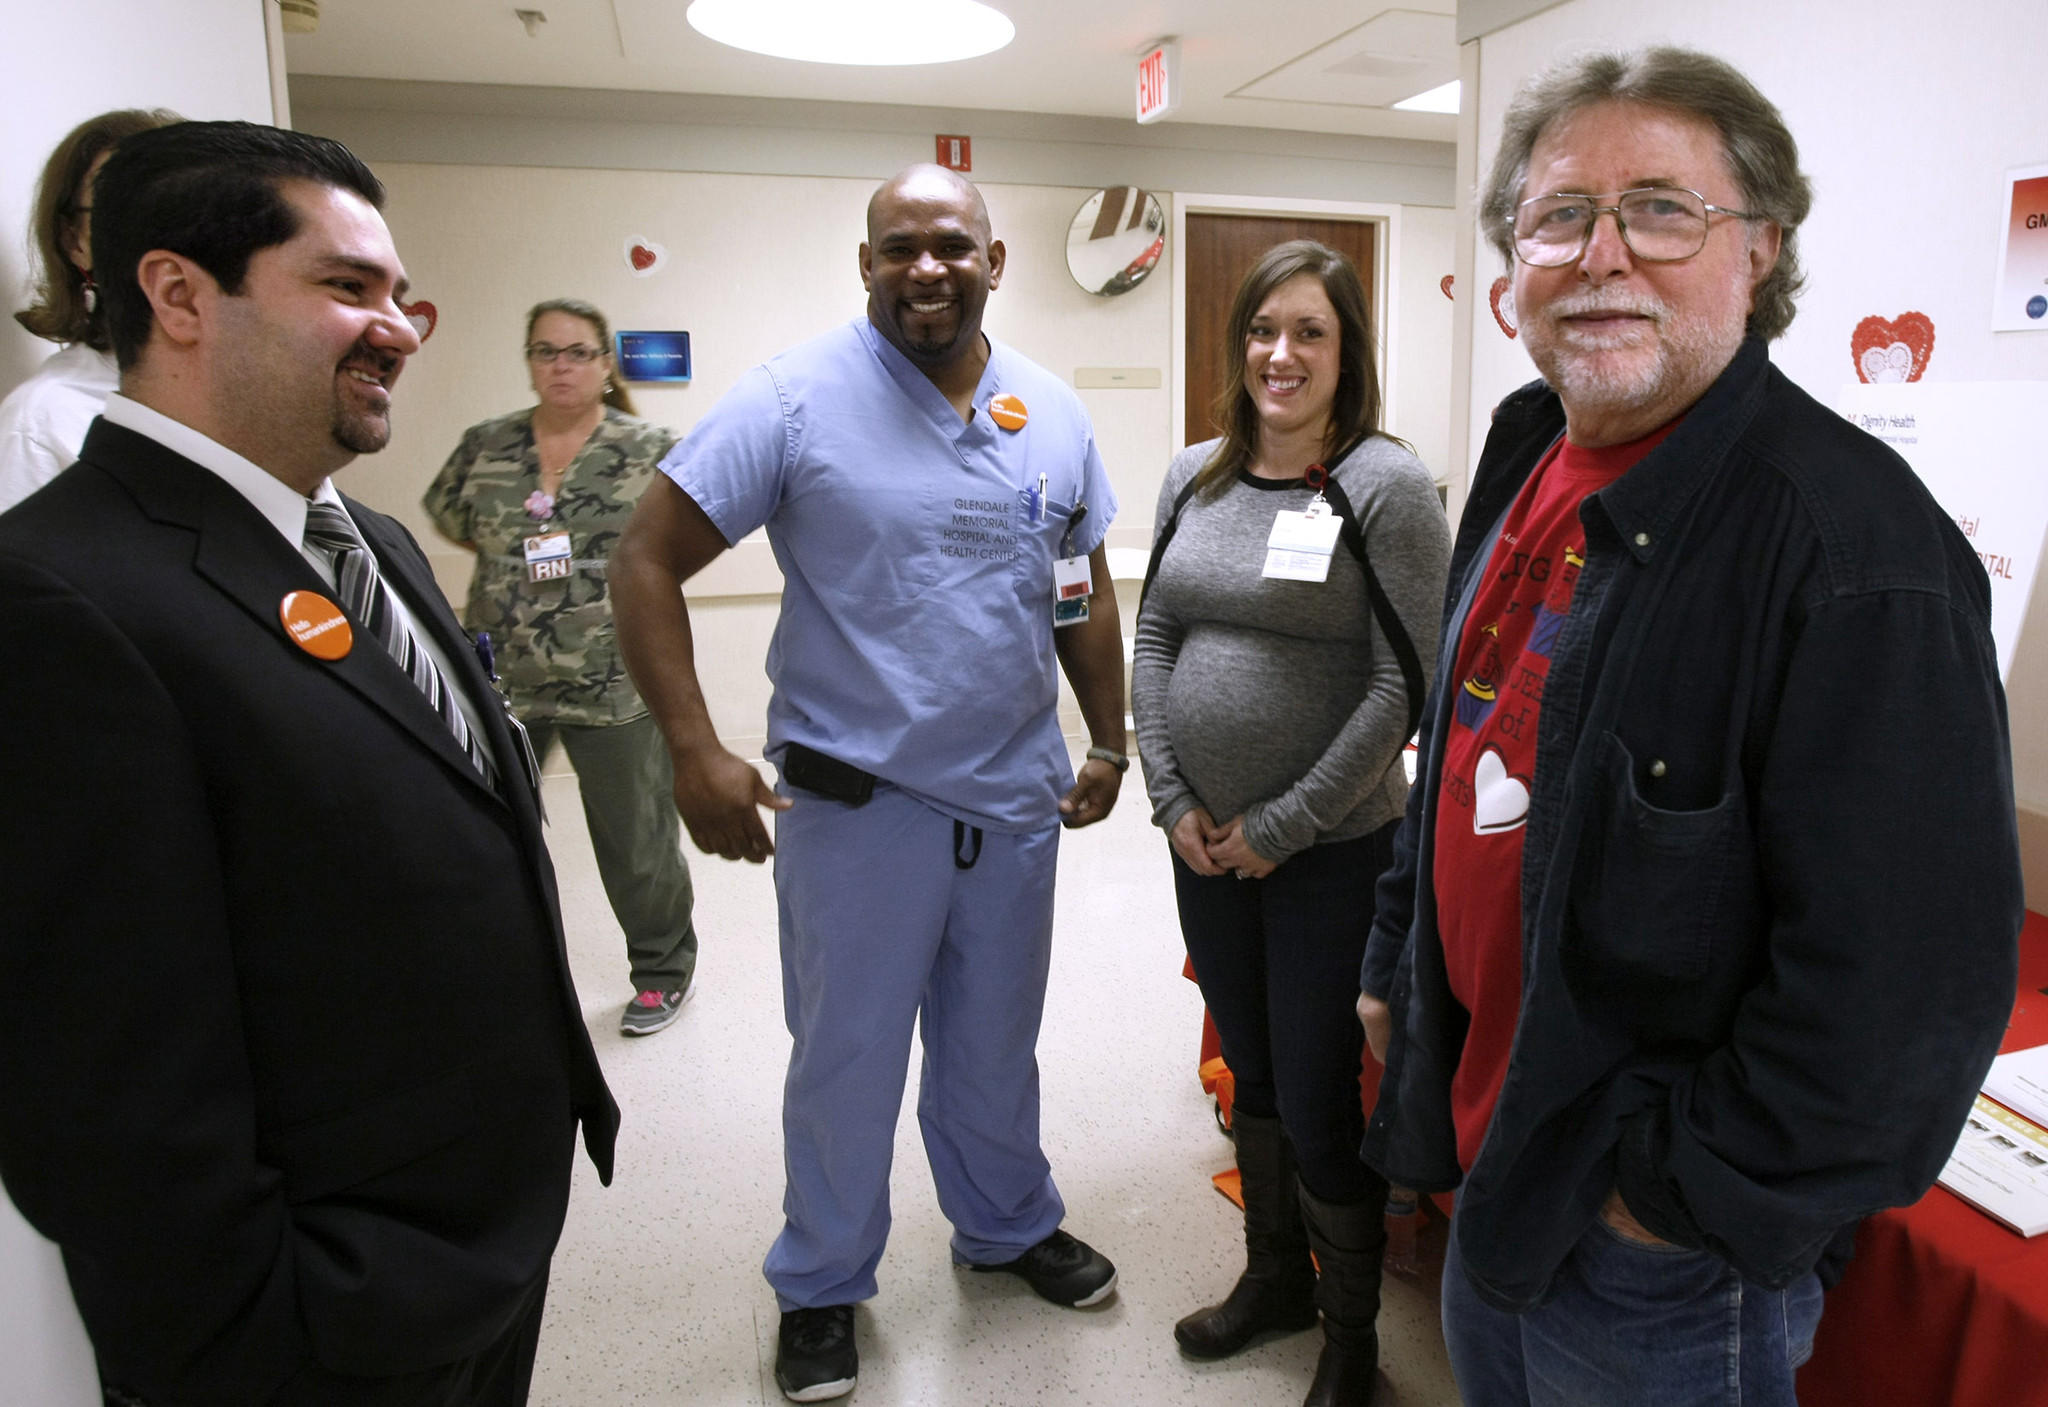 Rudy Donofrio, 66 of Glendale, right, got a chance to meet hospital employees and locals who helped saved his life about 6 months ago when he was having a heart attack in front of the hospital -- Howard Ferguson, left, and Michelle Carmichael, right -- during the Kings and Queens of Heart celebration at Glendale Memorial Hospital in Glendale on Thursday, Feb. 20, 2014.